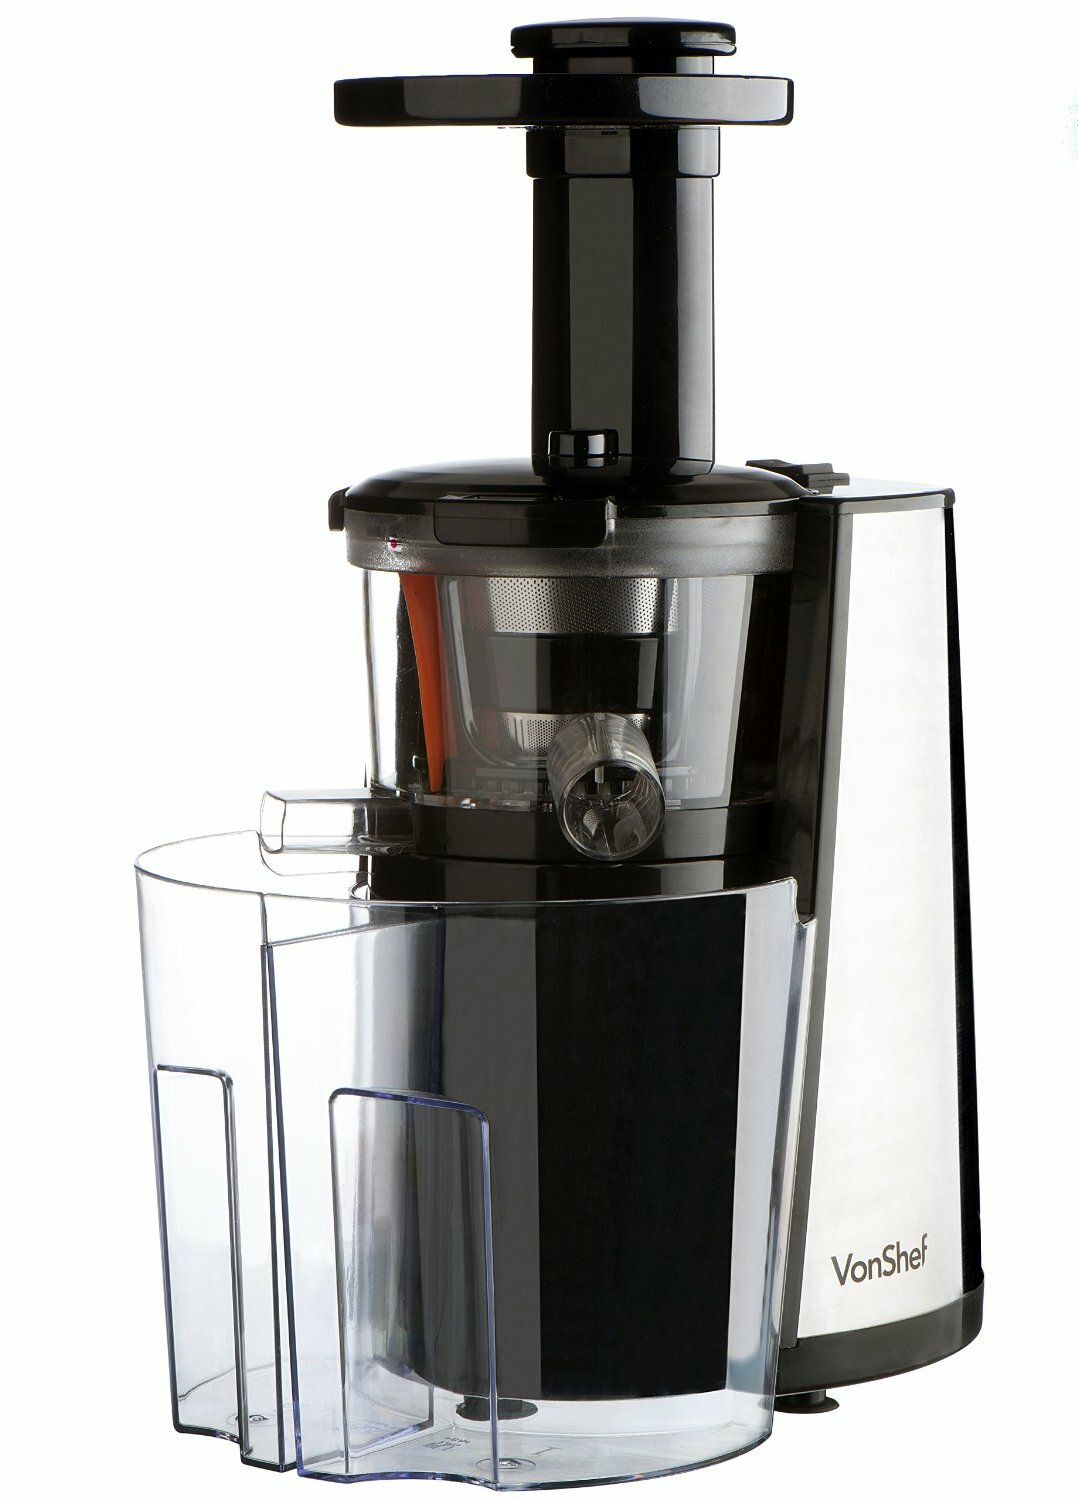 Vonshef Slow Juicer Horizontal Masticating Juice Extractor Wheatgrass Fruit : vonShef 150W Slow Masticating Single Auger Juicer